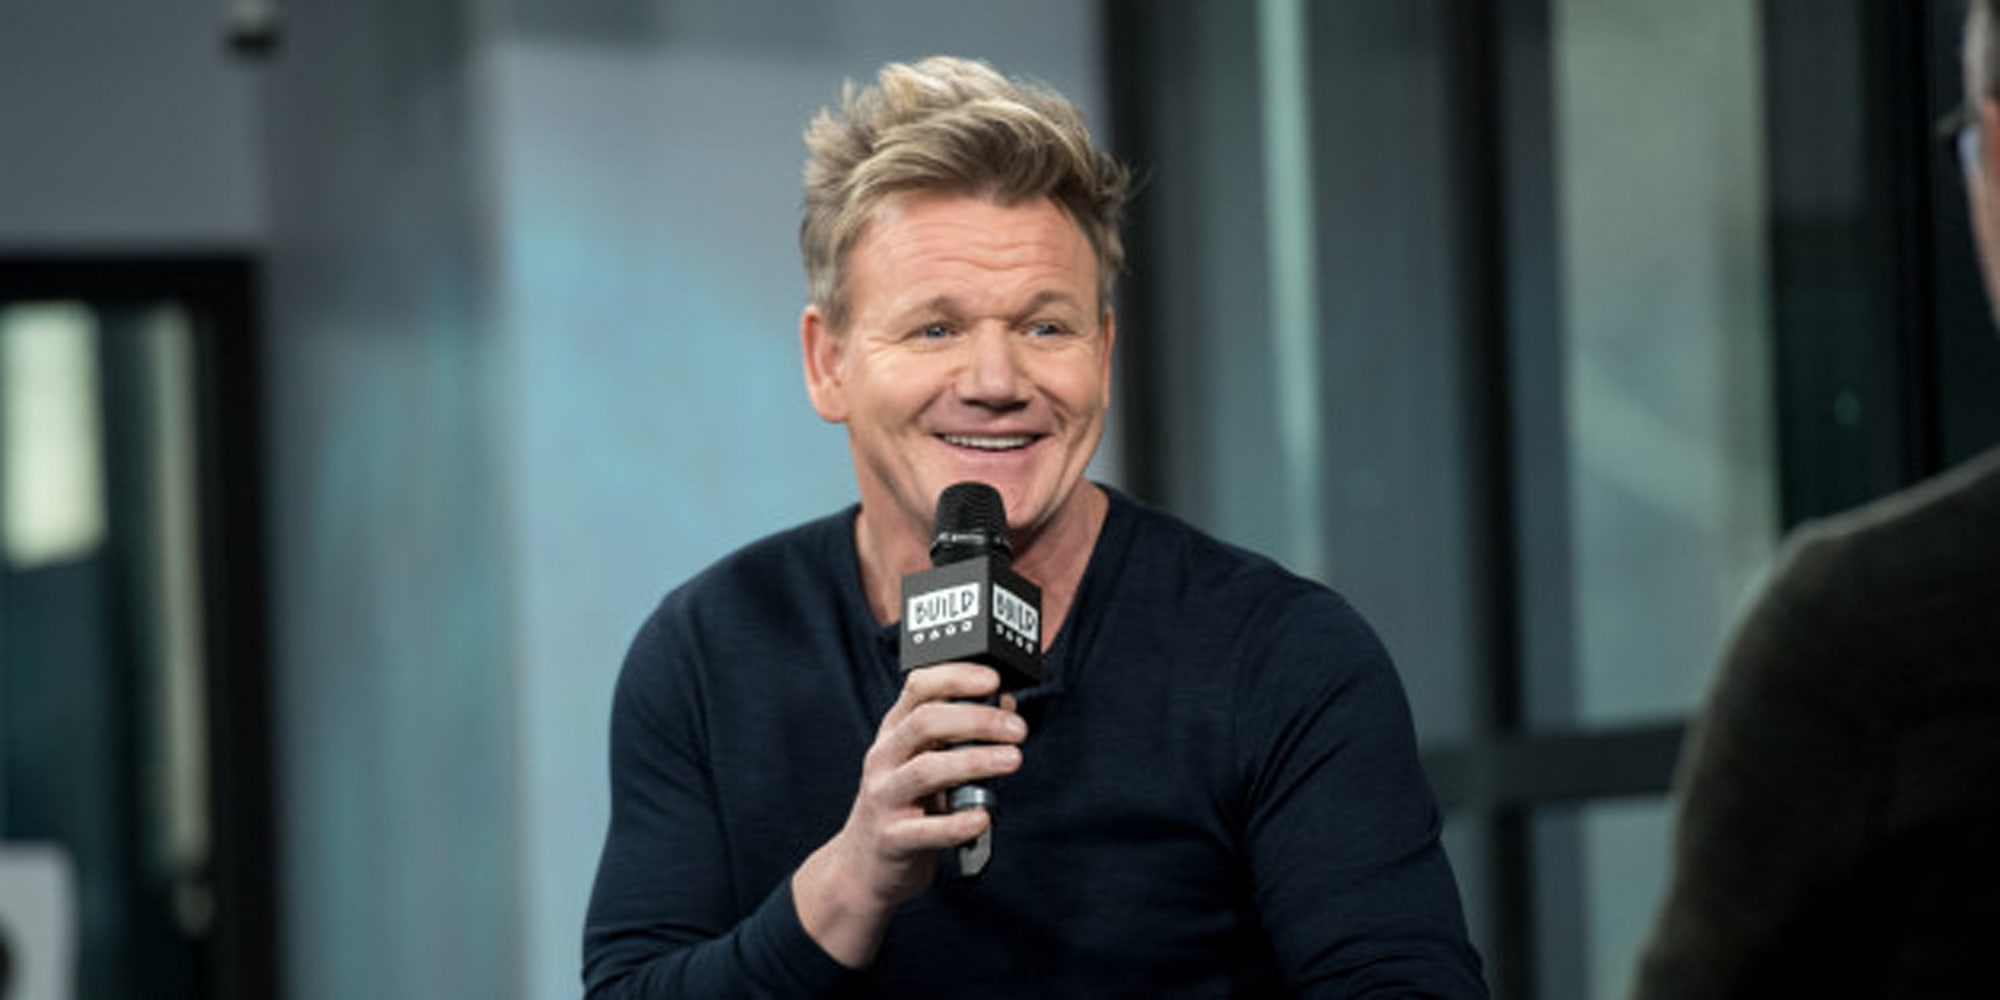 Twitter Can't Get Enough Of Gordon Ramsay's Brutally Honest Food Reviews